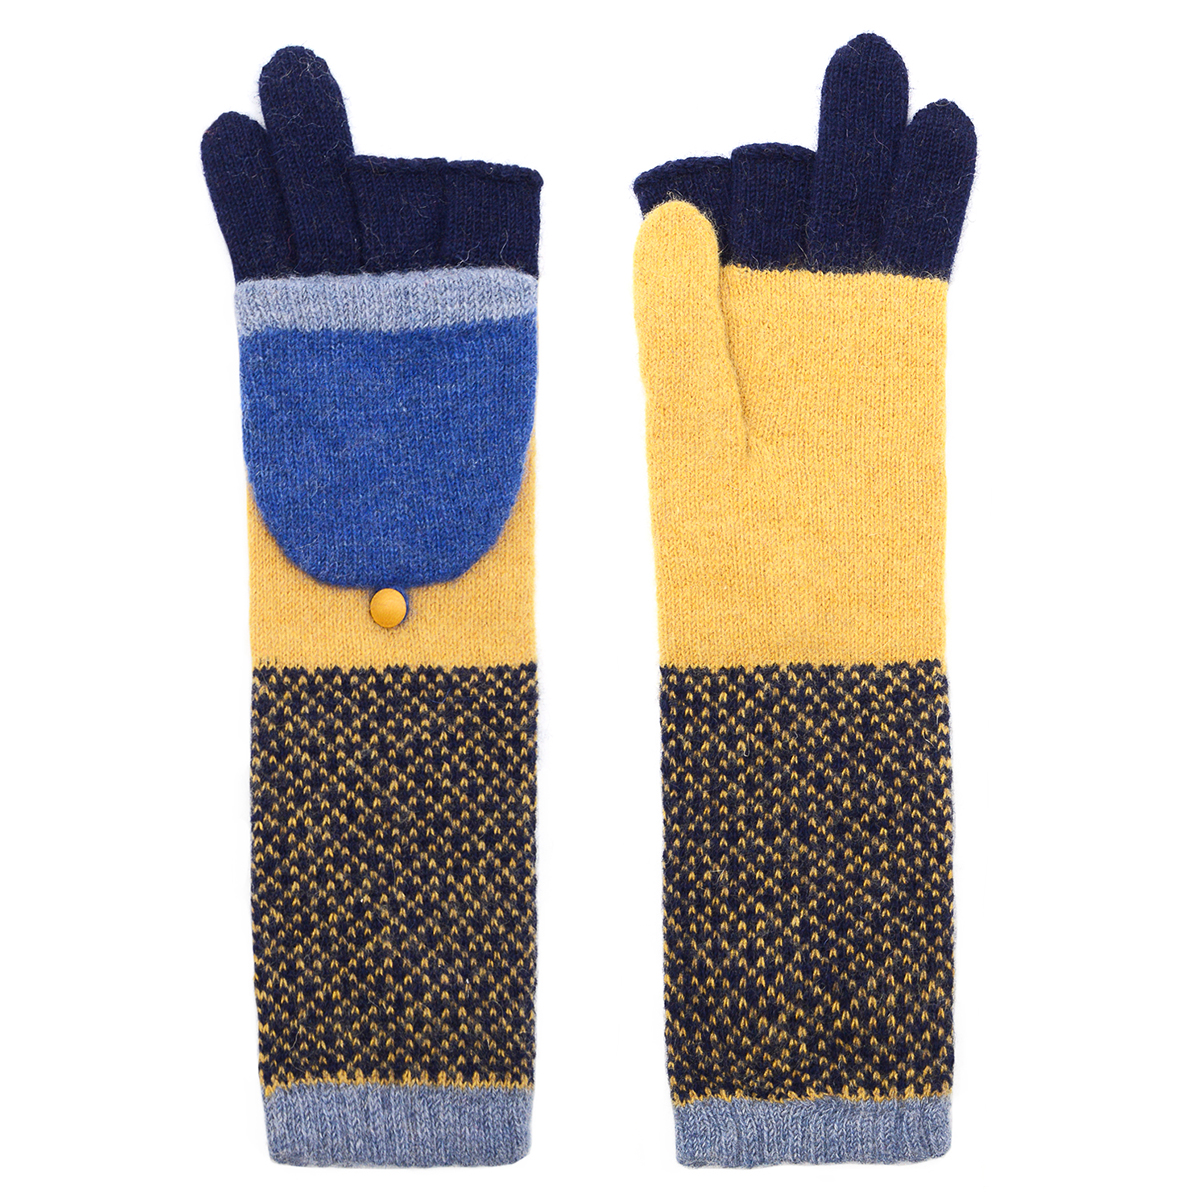 Yellow and blue long flap gloves by Santacana